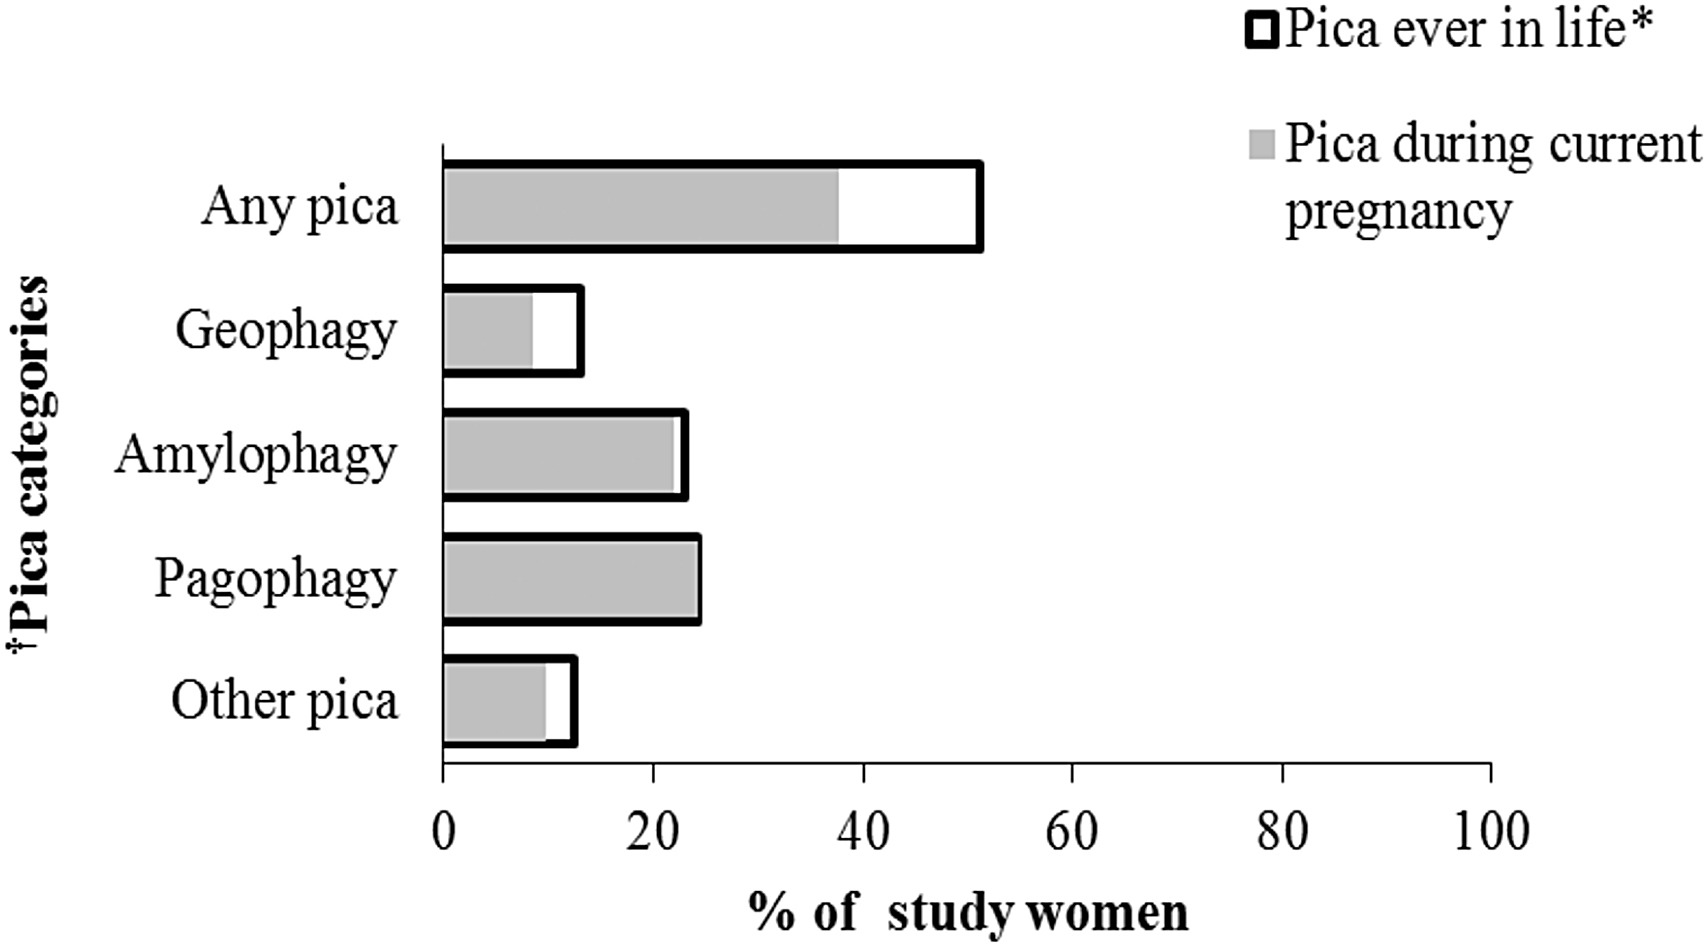 Pica Among Hispanic Women Living in the US